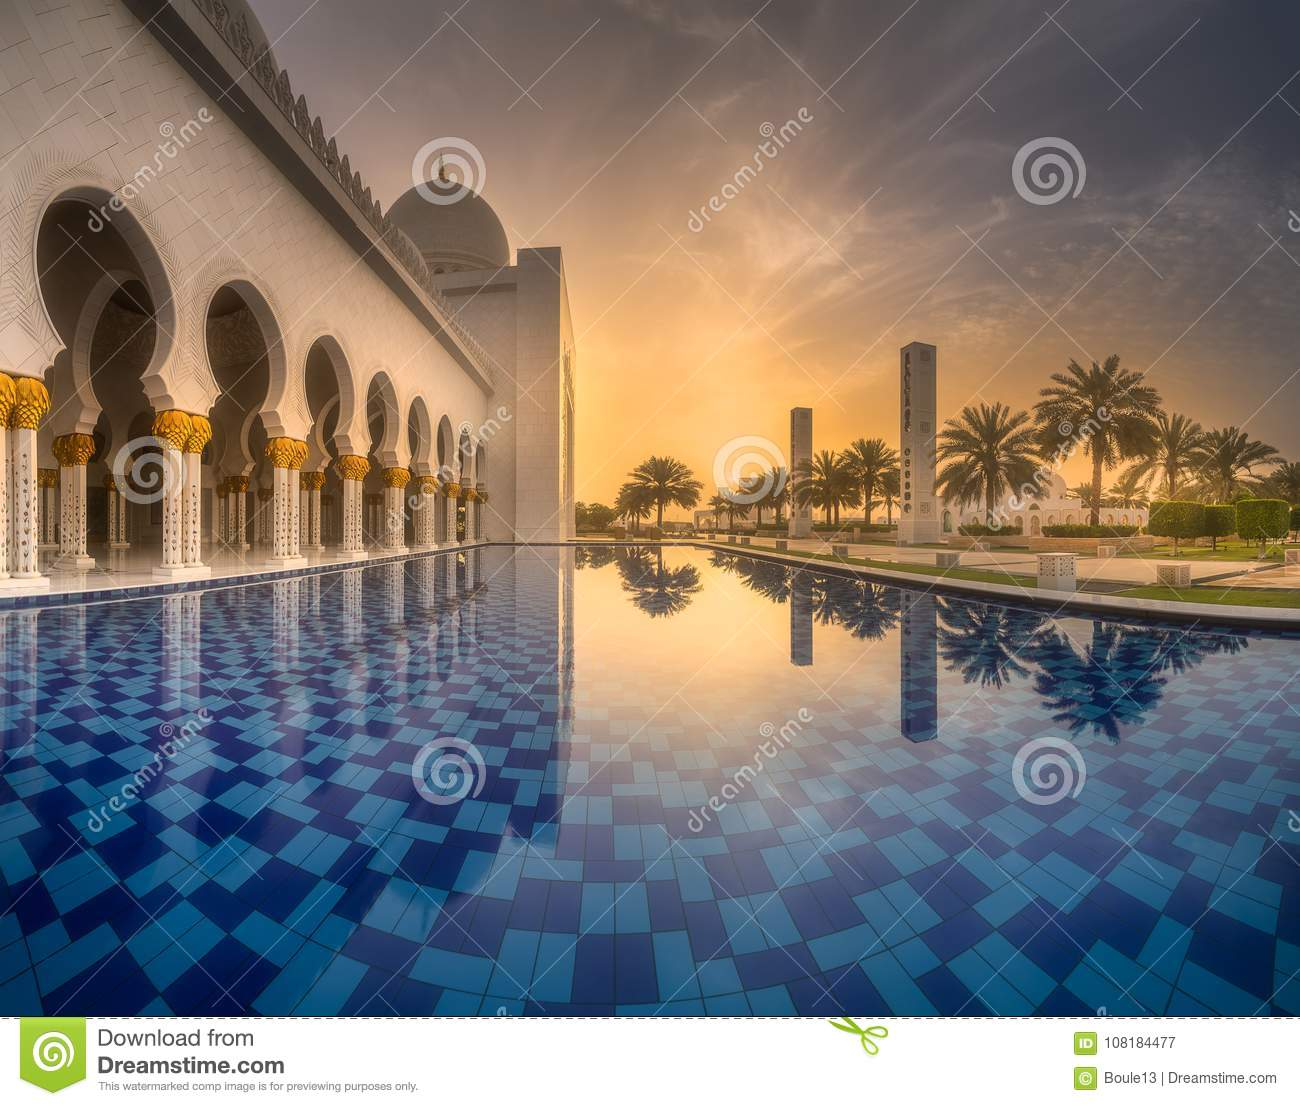 View of Sheikh Zayed Grand Mosque from water